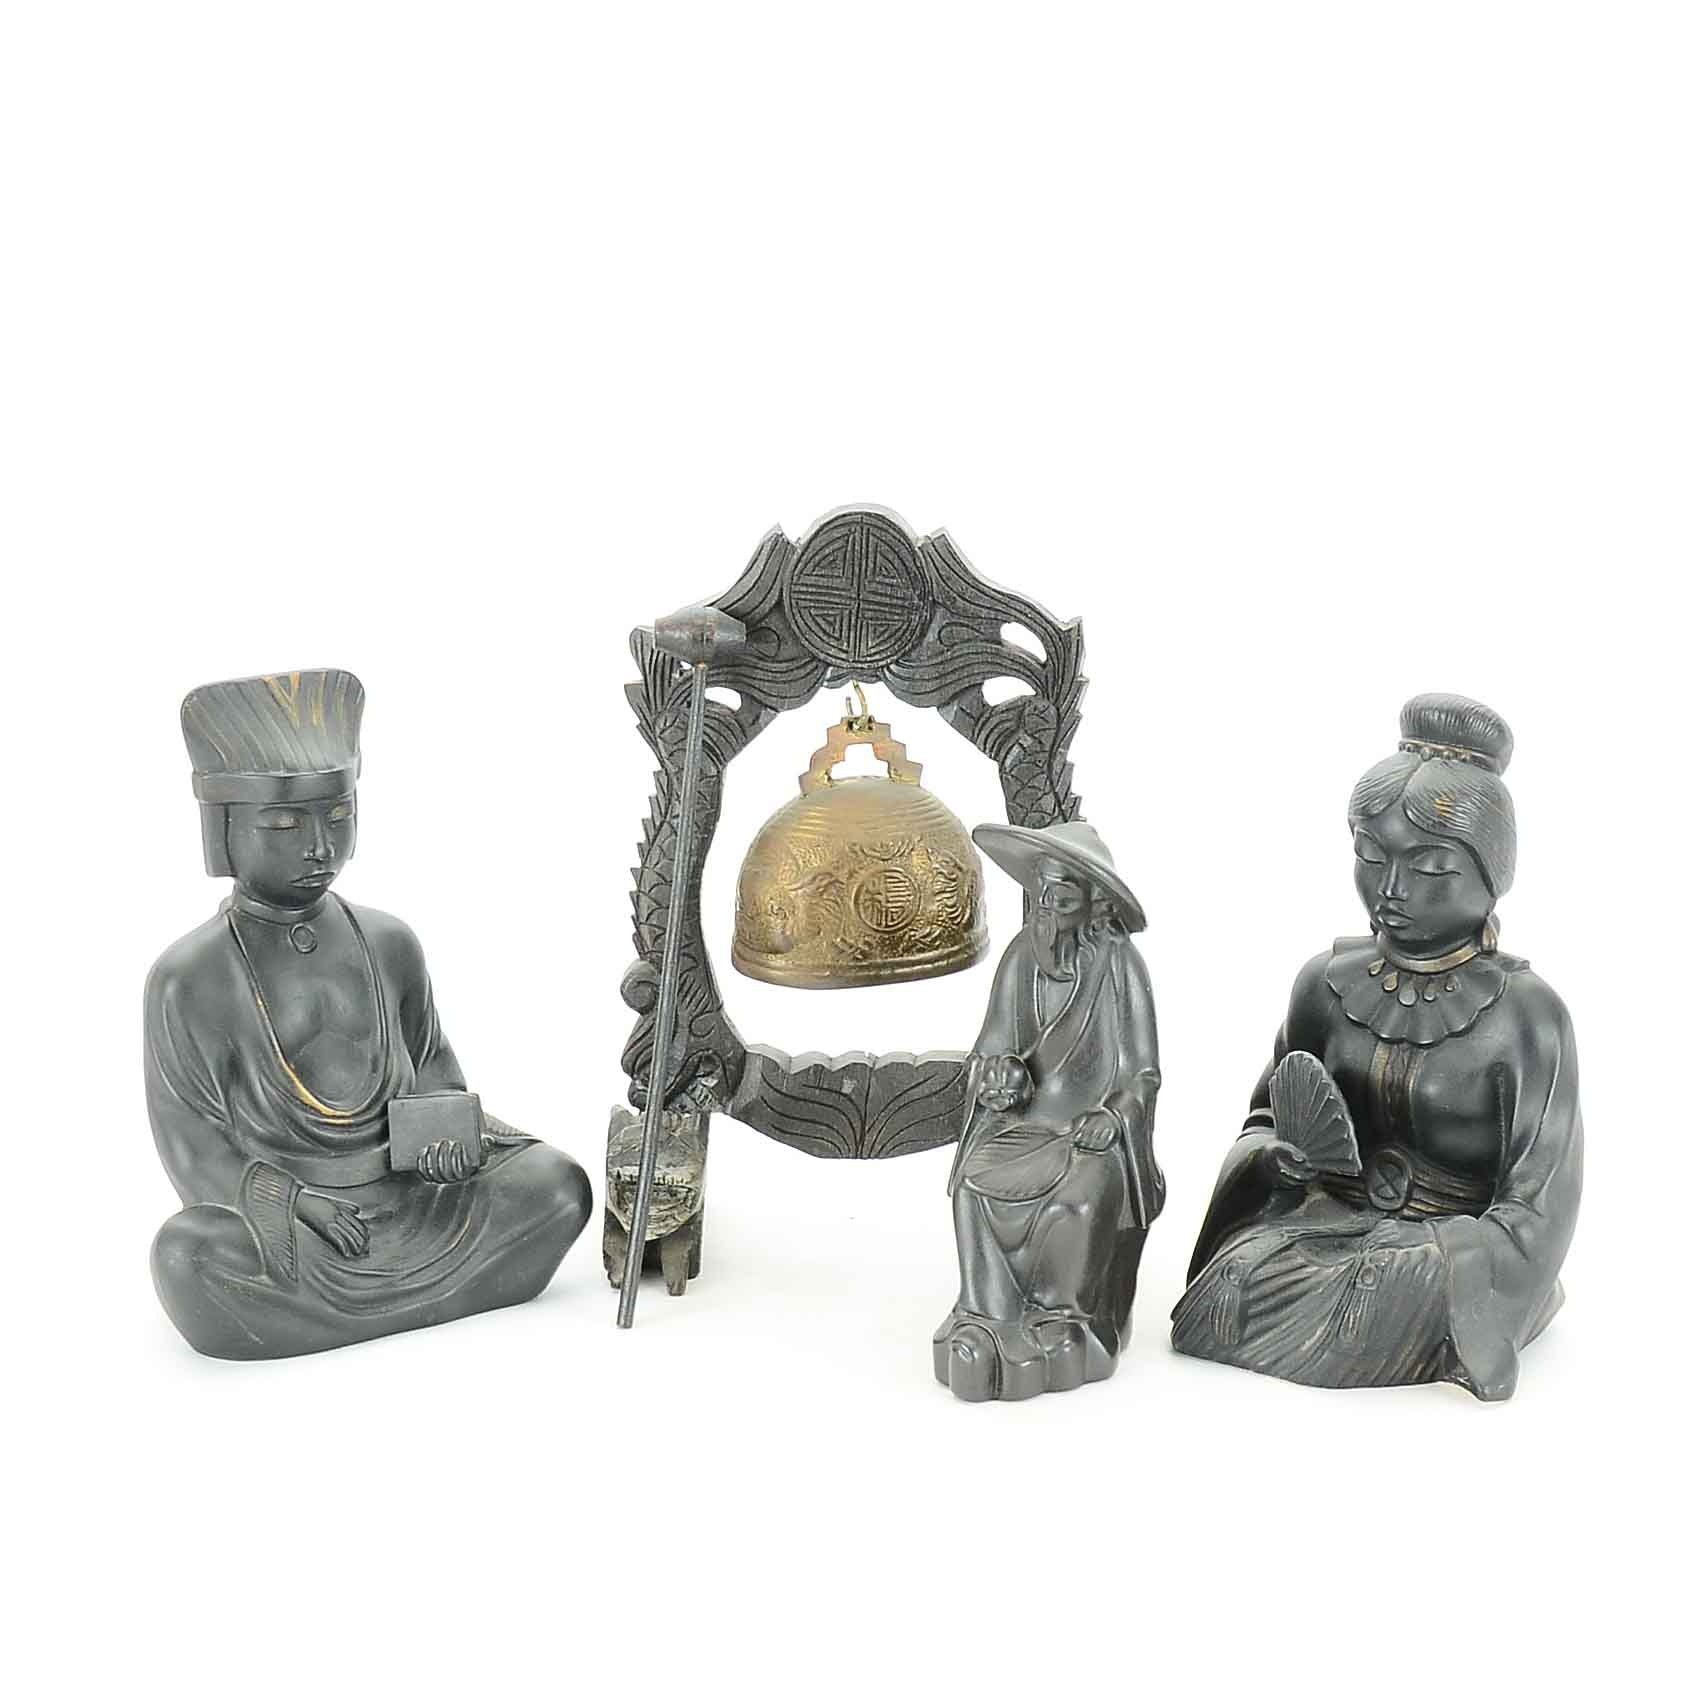 Vintage Asian Inspired Ceramic and Carved Wood Sculptures